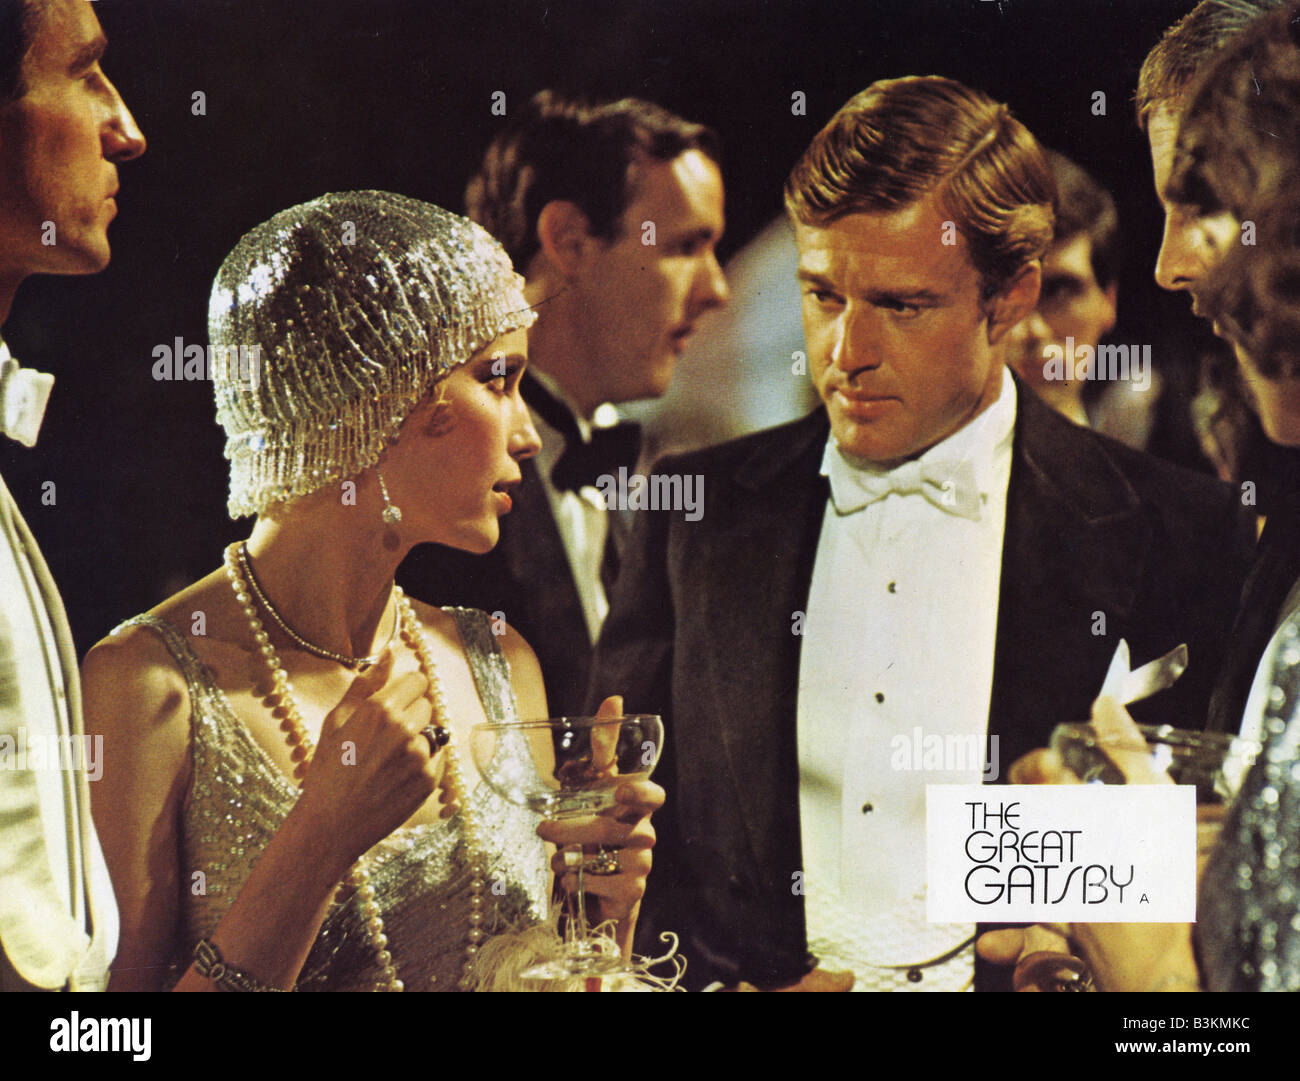 The Great Gatsby Stock Photos & The Great Gatsby Stock